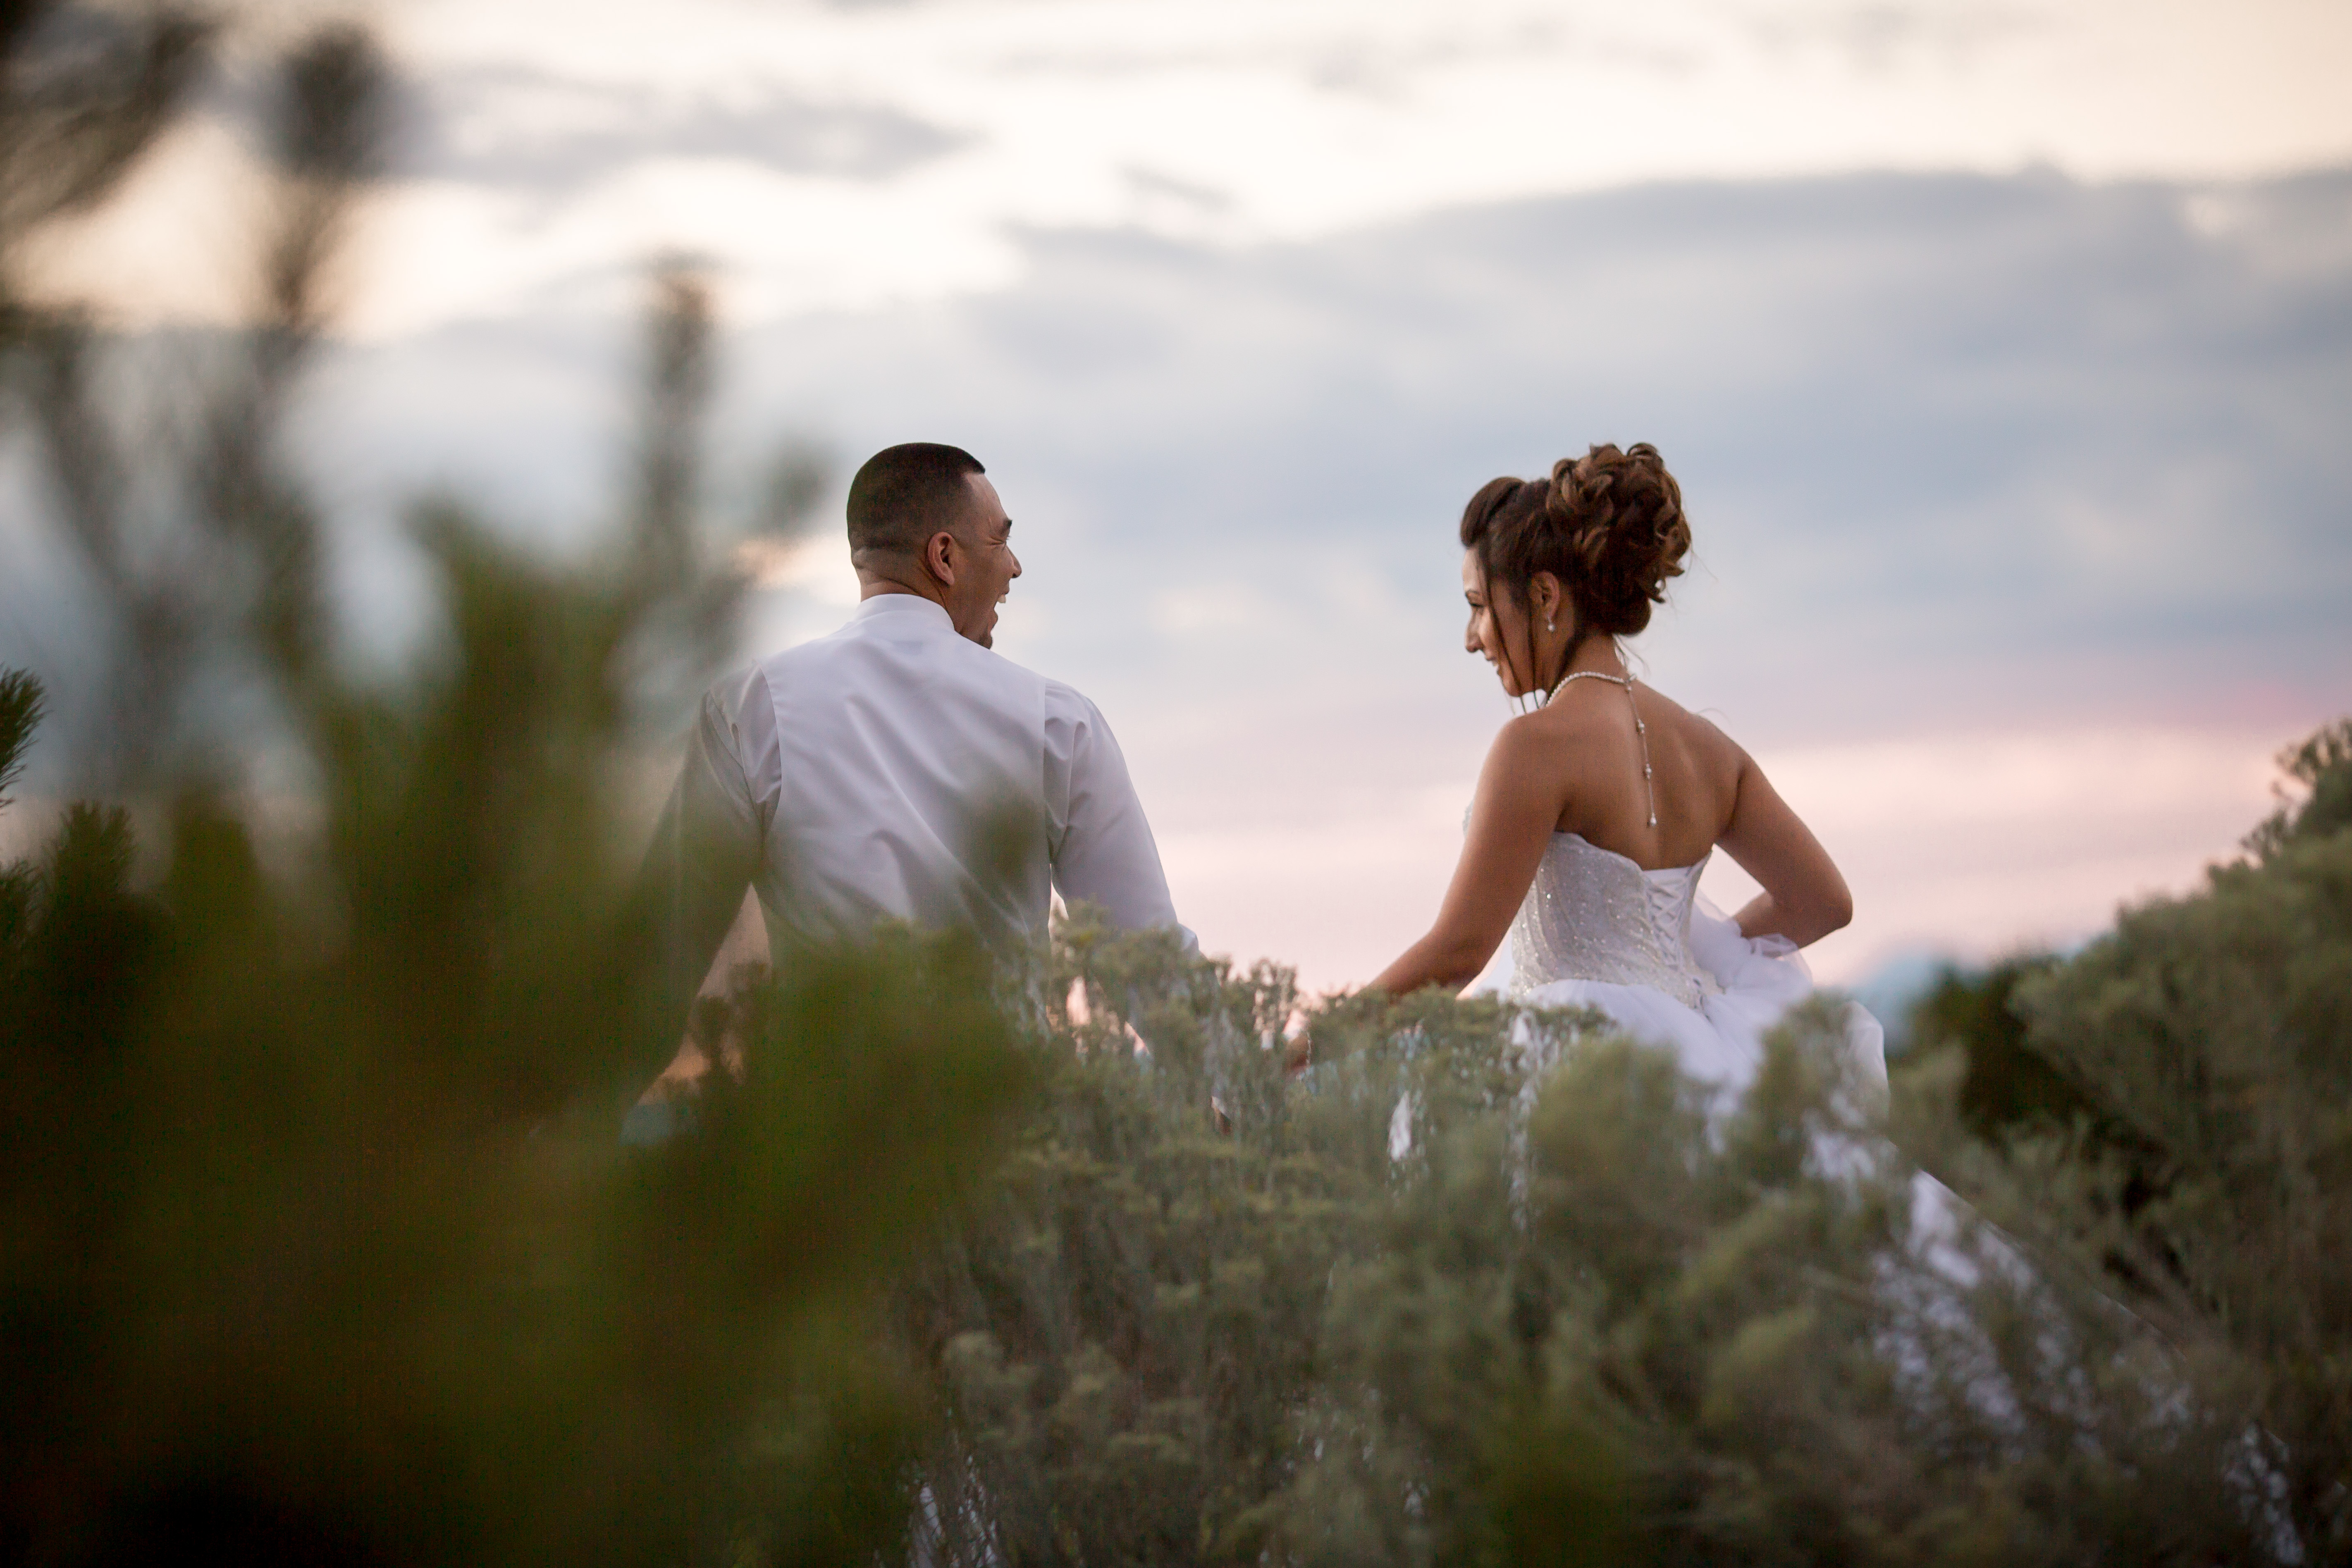 Perfect Wedding Guide planning design inspo ceremony inspiration marriage wedding vows celebration engaged planner tips tricks decor event New Mexico Albuquerque Santa Fe true love happy couple sunset outdoor photography portrait natural light